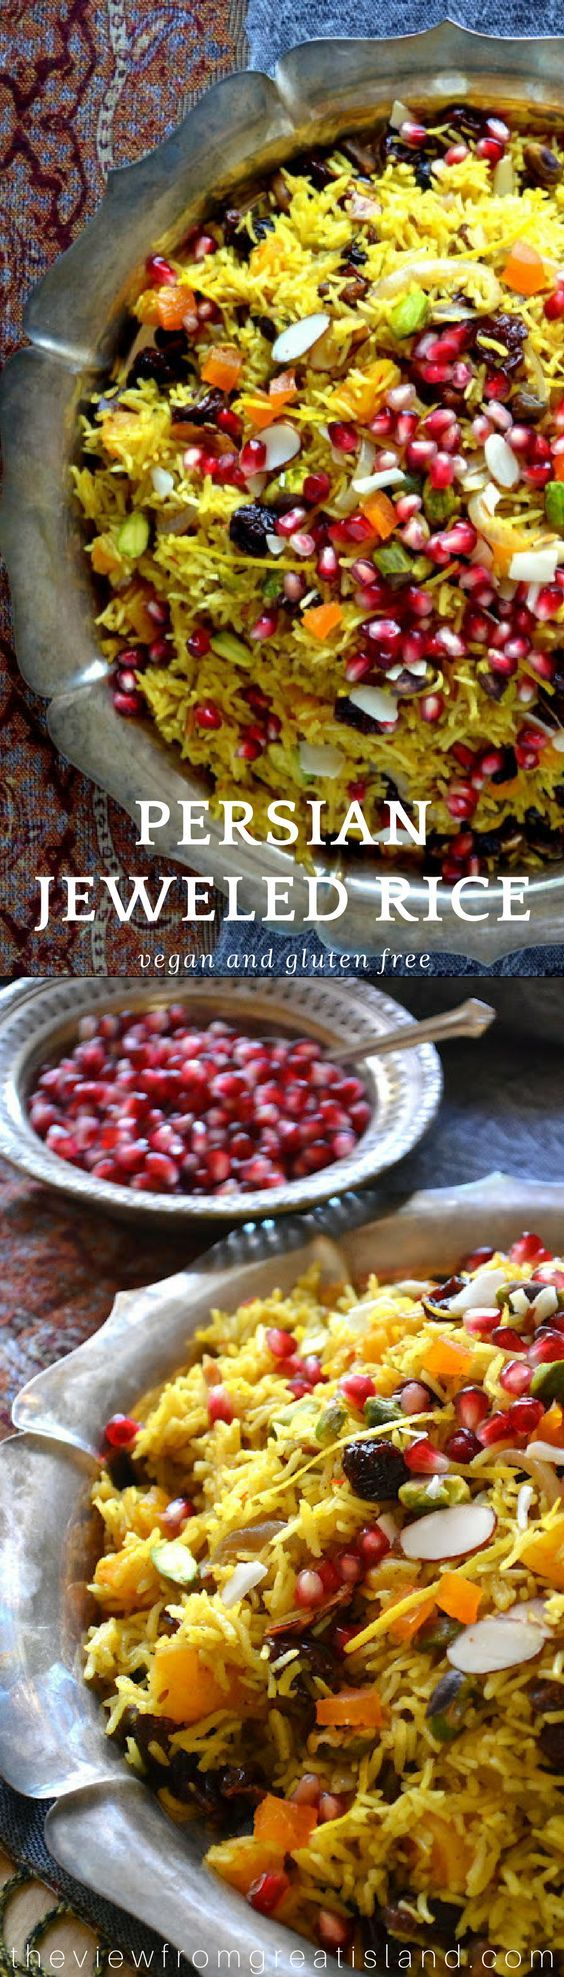 Persian Jeweled Rice is a spectacular rice pilaf topped with colorful gem-like fruits and nuts ~ this popular Middle Eastern wedding dish is a celebration in itself.  It's gluten free, vegan, and incredibly delicious! #holidaysidedish #vegan #glutenfree #vegetarian #persian #iranian #MiddleEastern #weddingfood #pomegranates #saffron #pilaf #rice #holidays #Christmas #thanksgiving #Thanksgivingsidedish